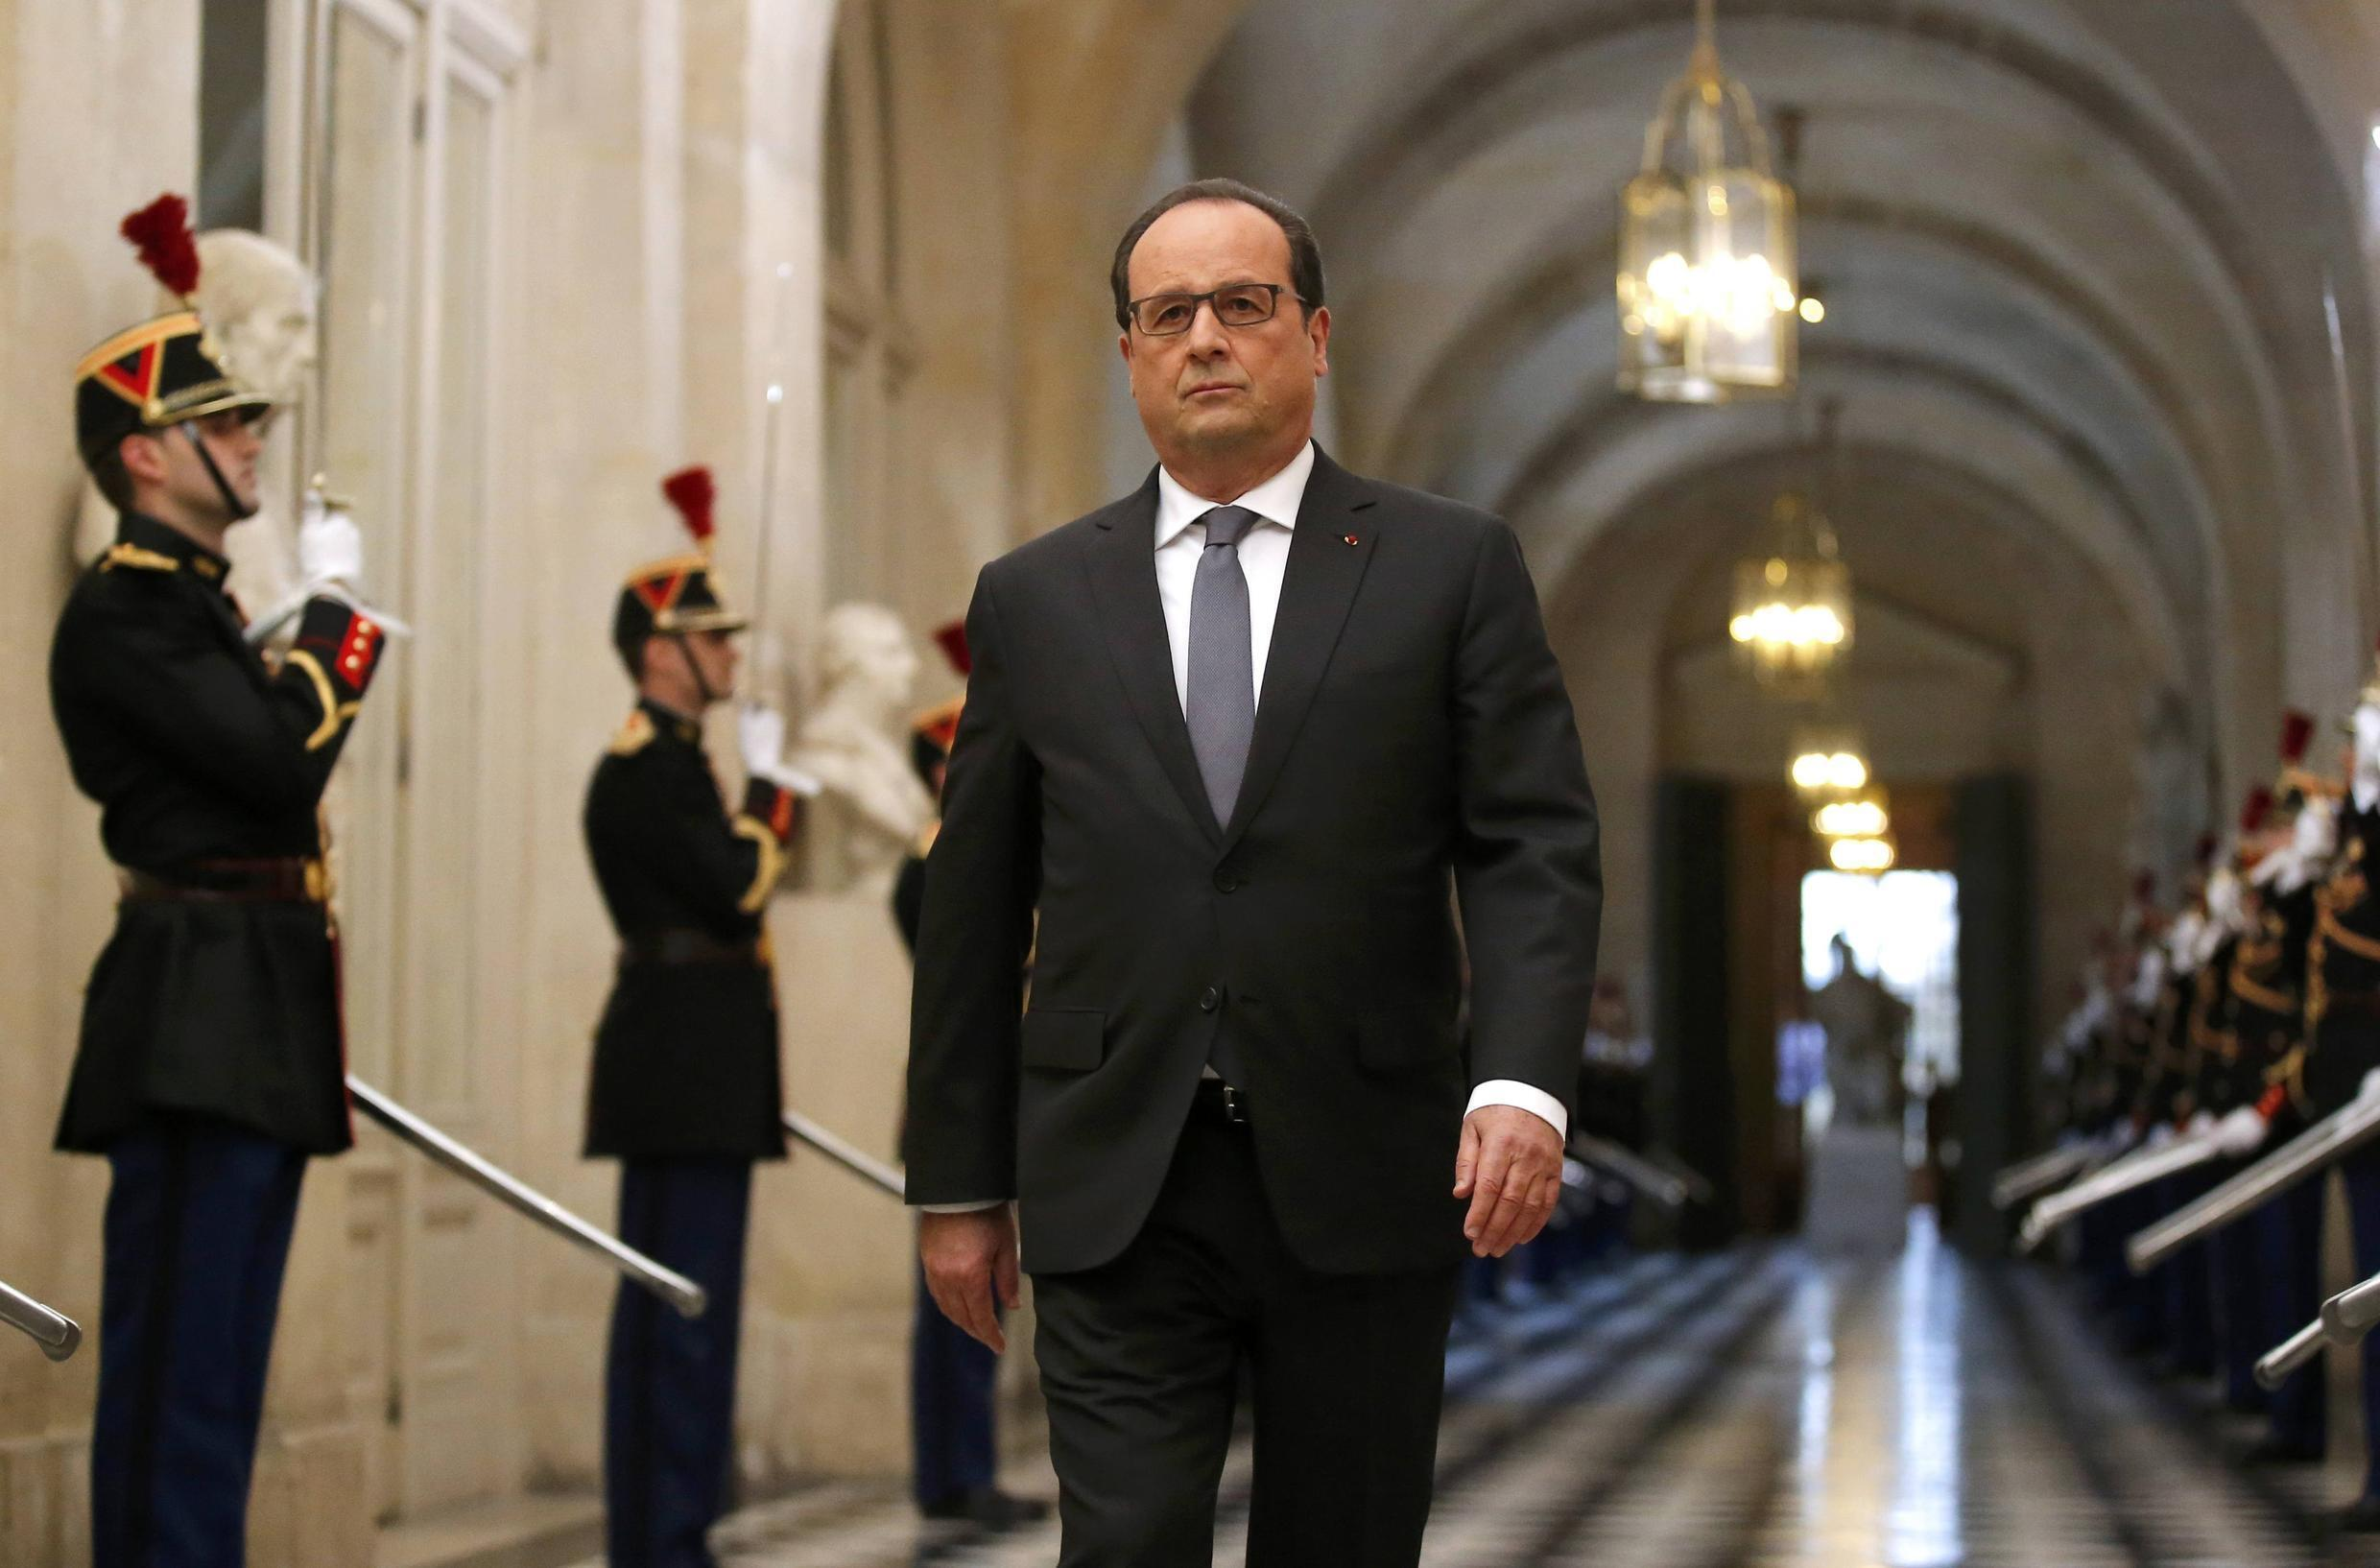 French President Francois Hollande will meet world leaders this week to establish a broad coalition against the Islamic State armed group.